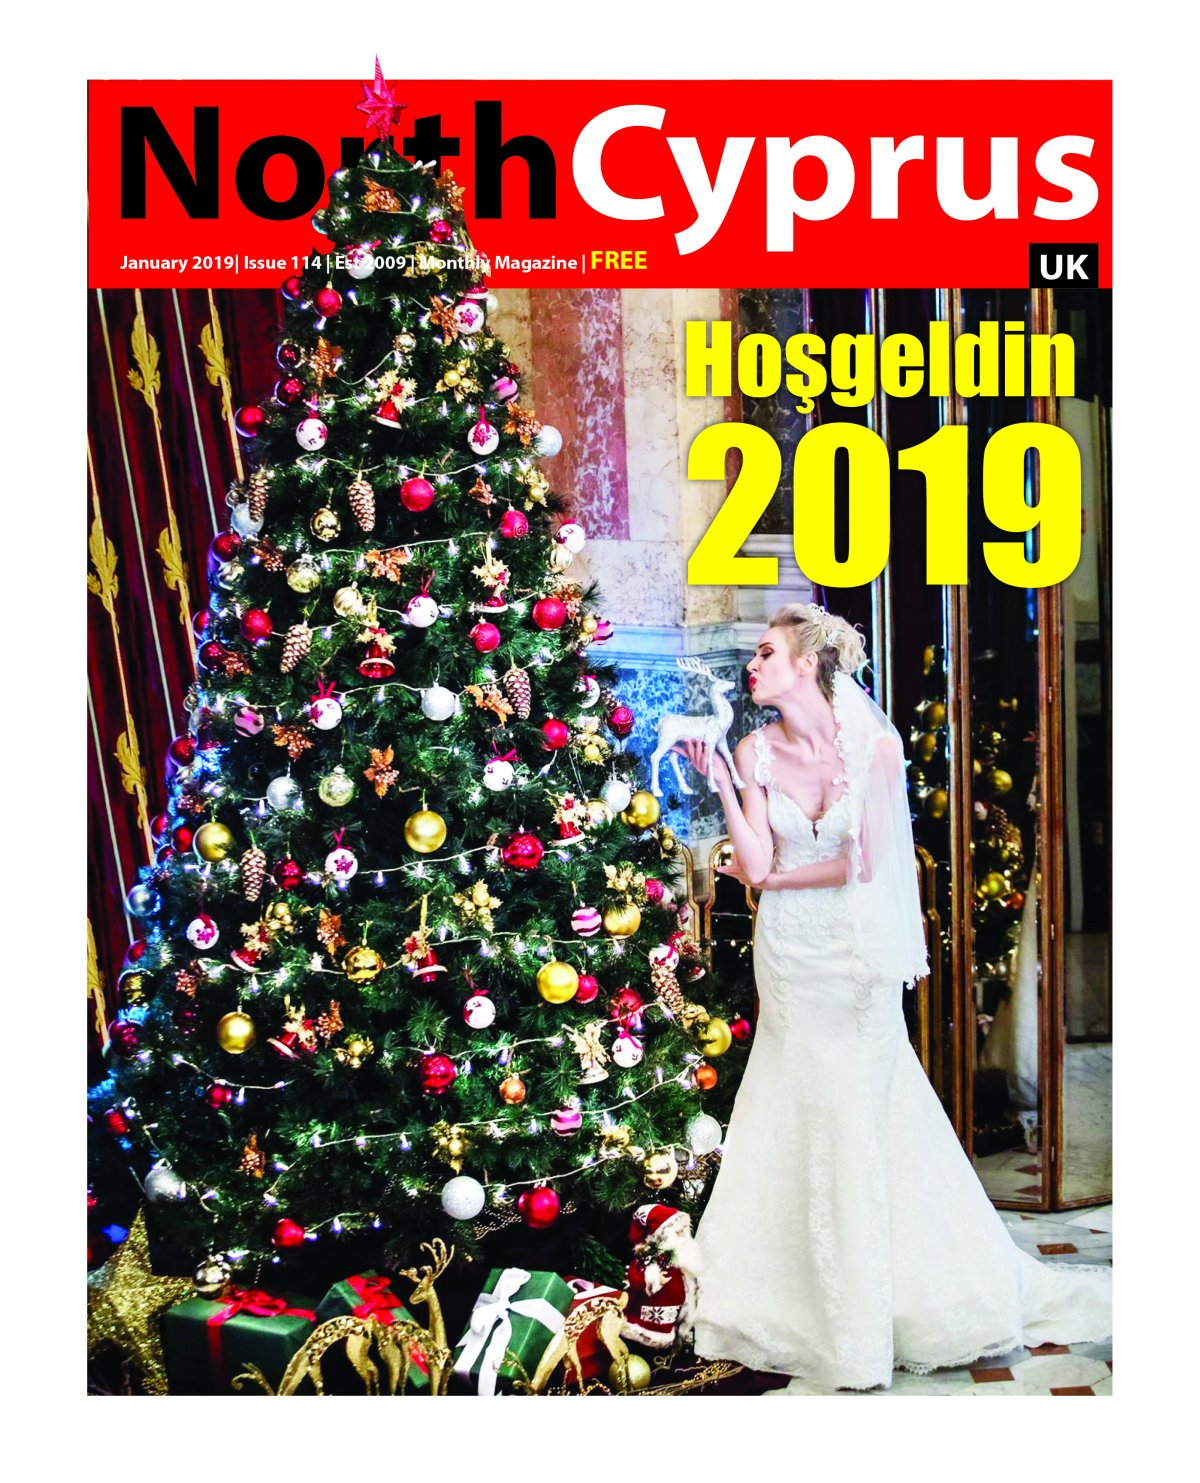 North Cyprus UK - January 2018 - Issue 114